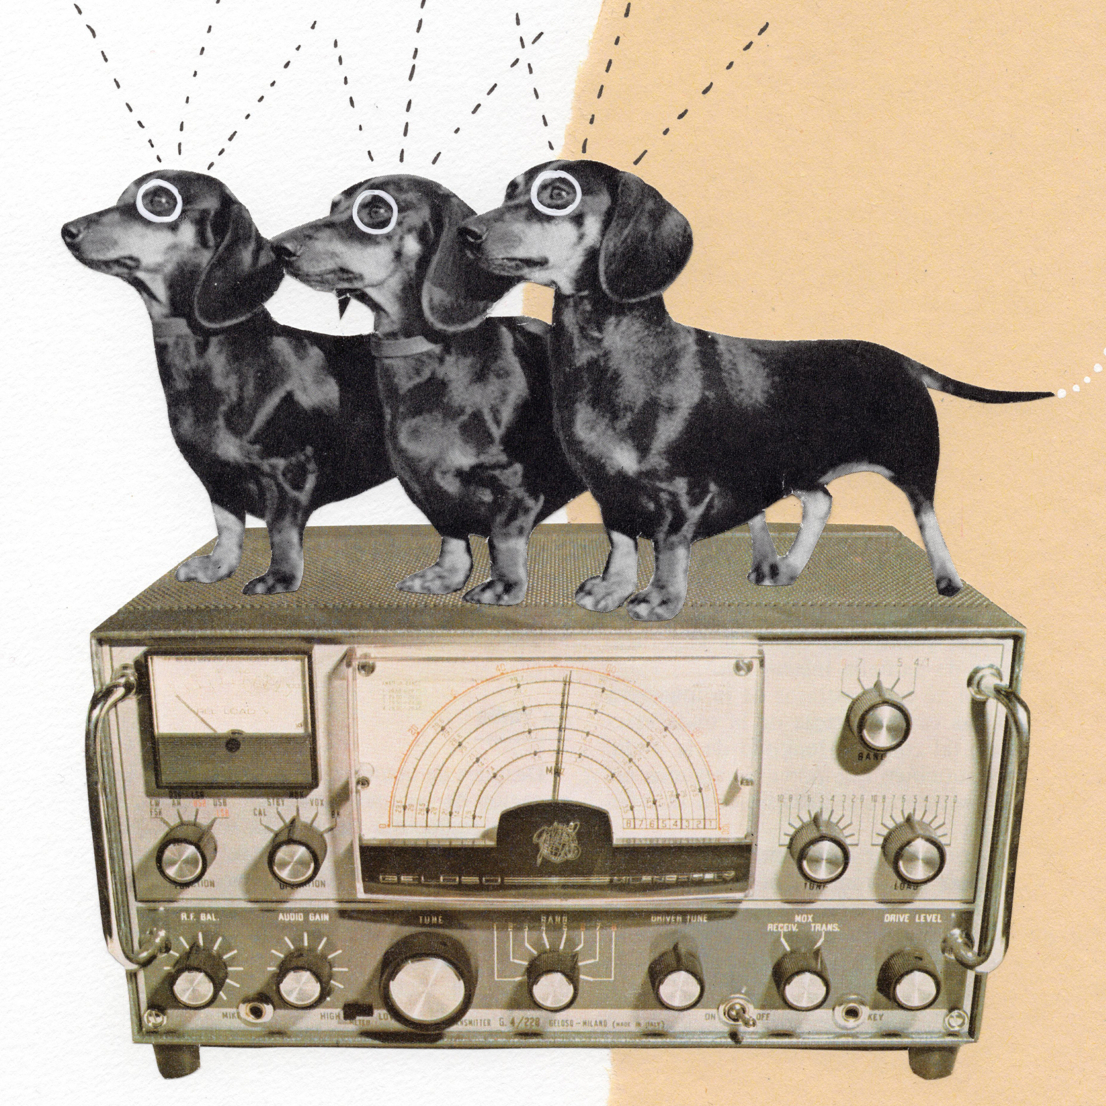 A humerous collage made up of an old telecommunications machine, three sausage dogs and drawn on antennas.